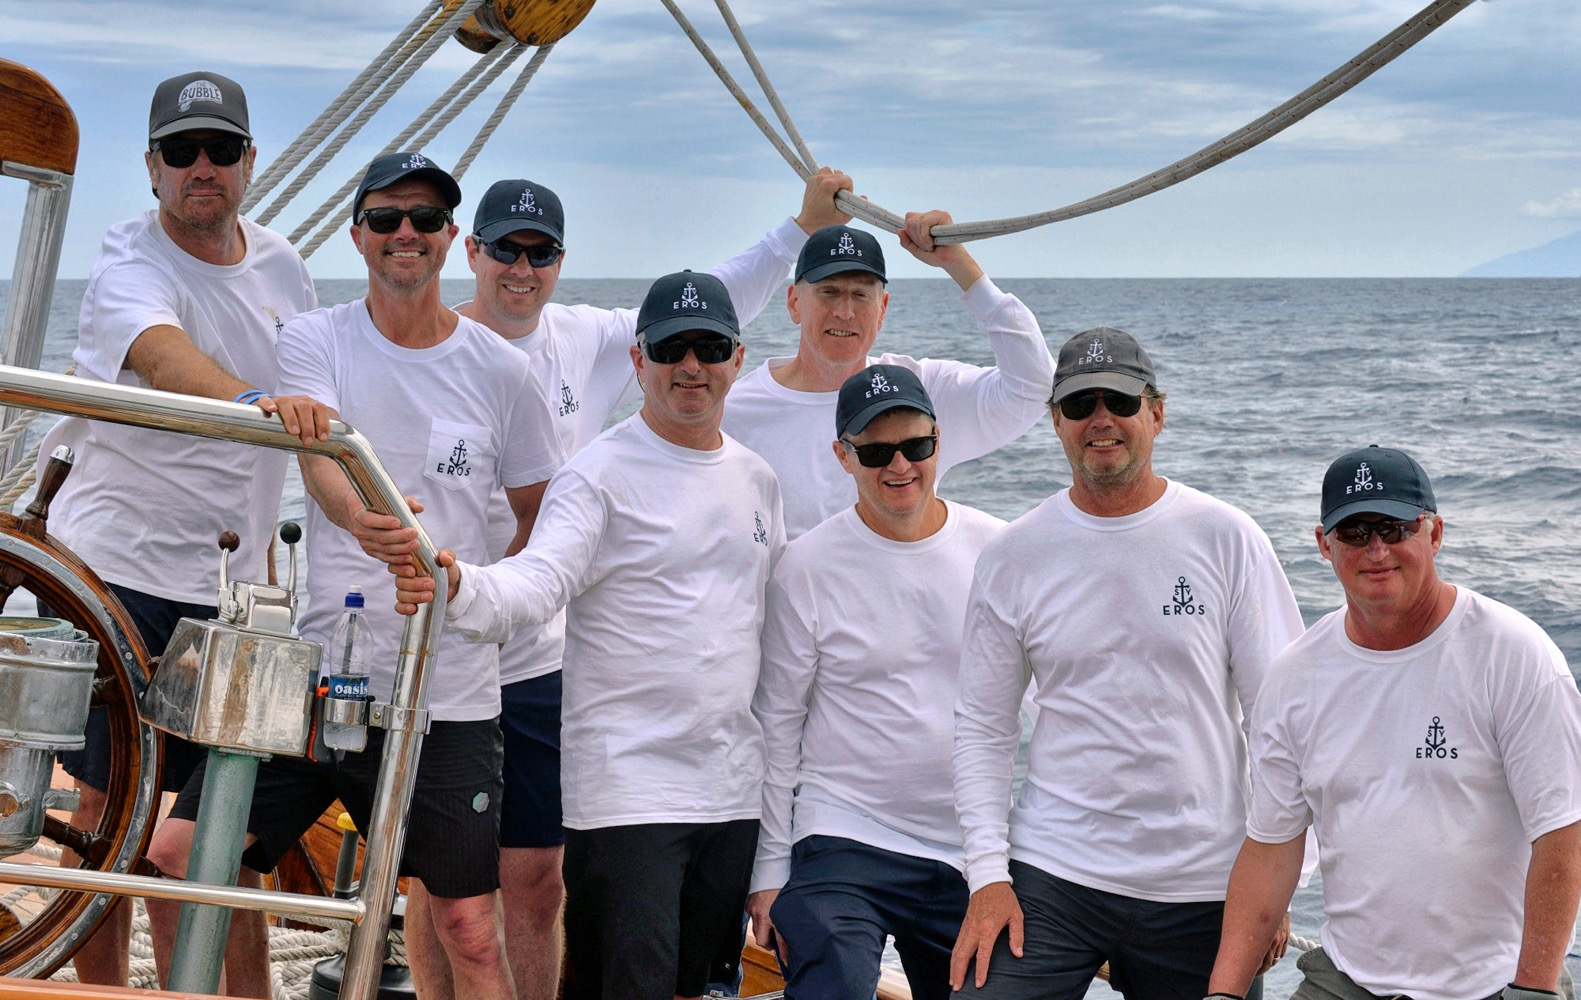 Eight charter guests joined Eros' crew and raced four days straight.